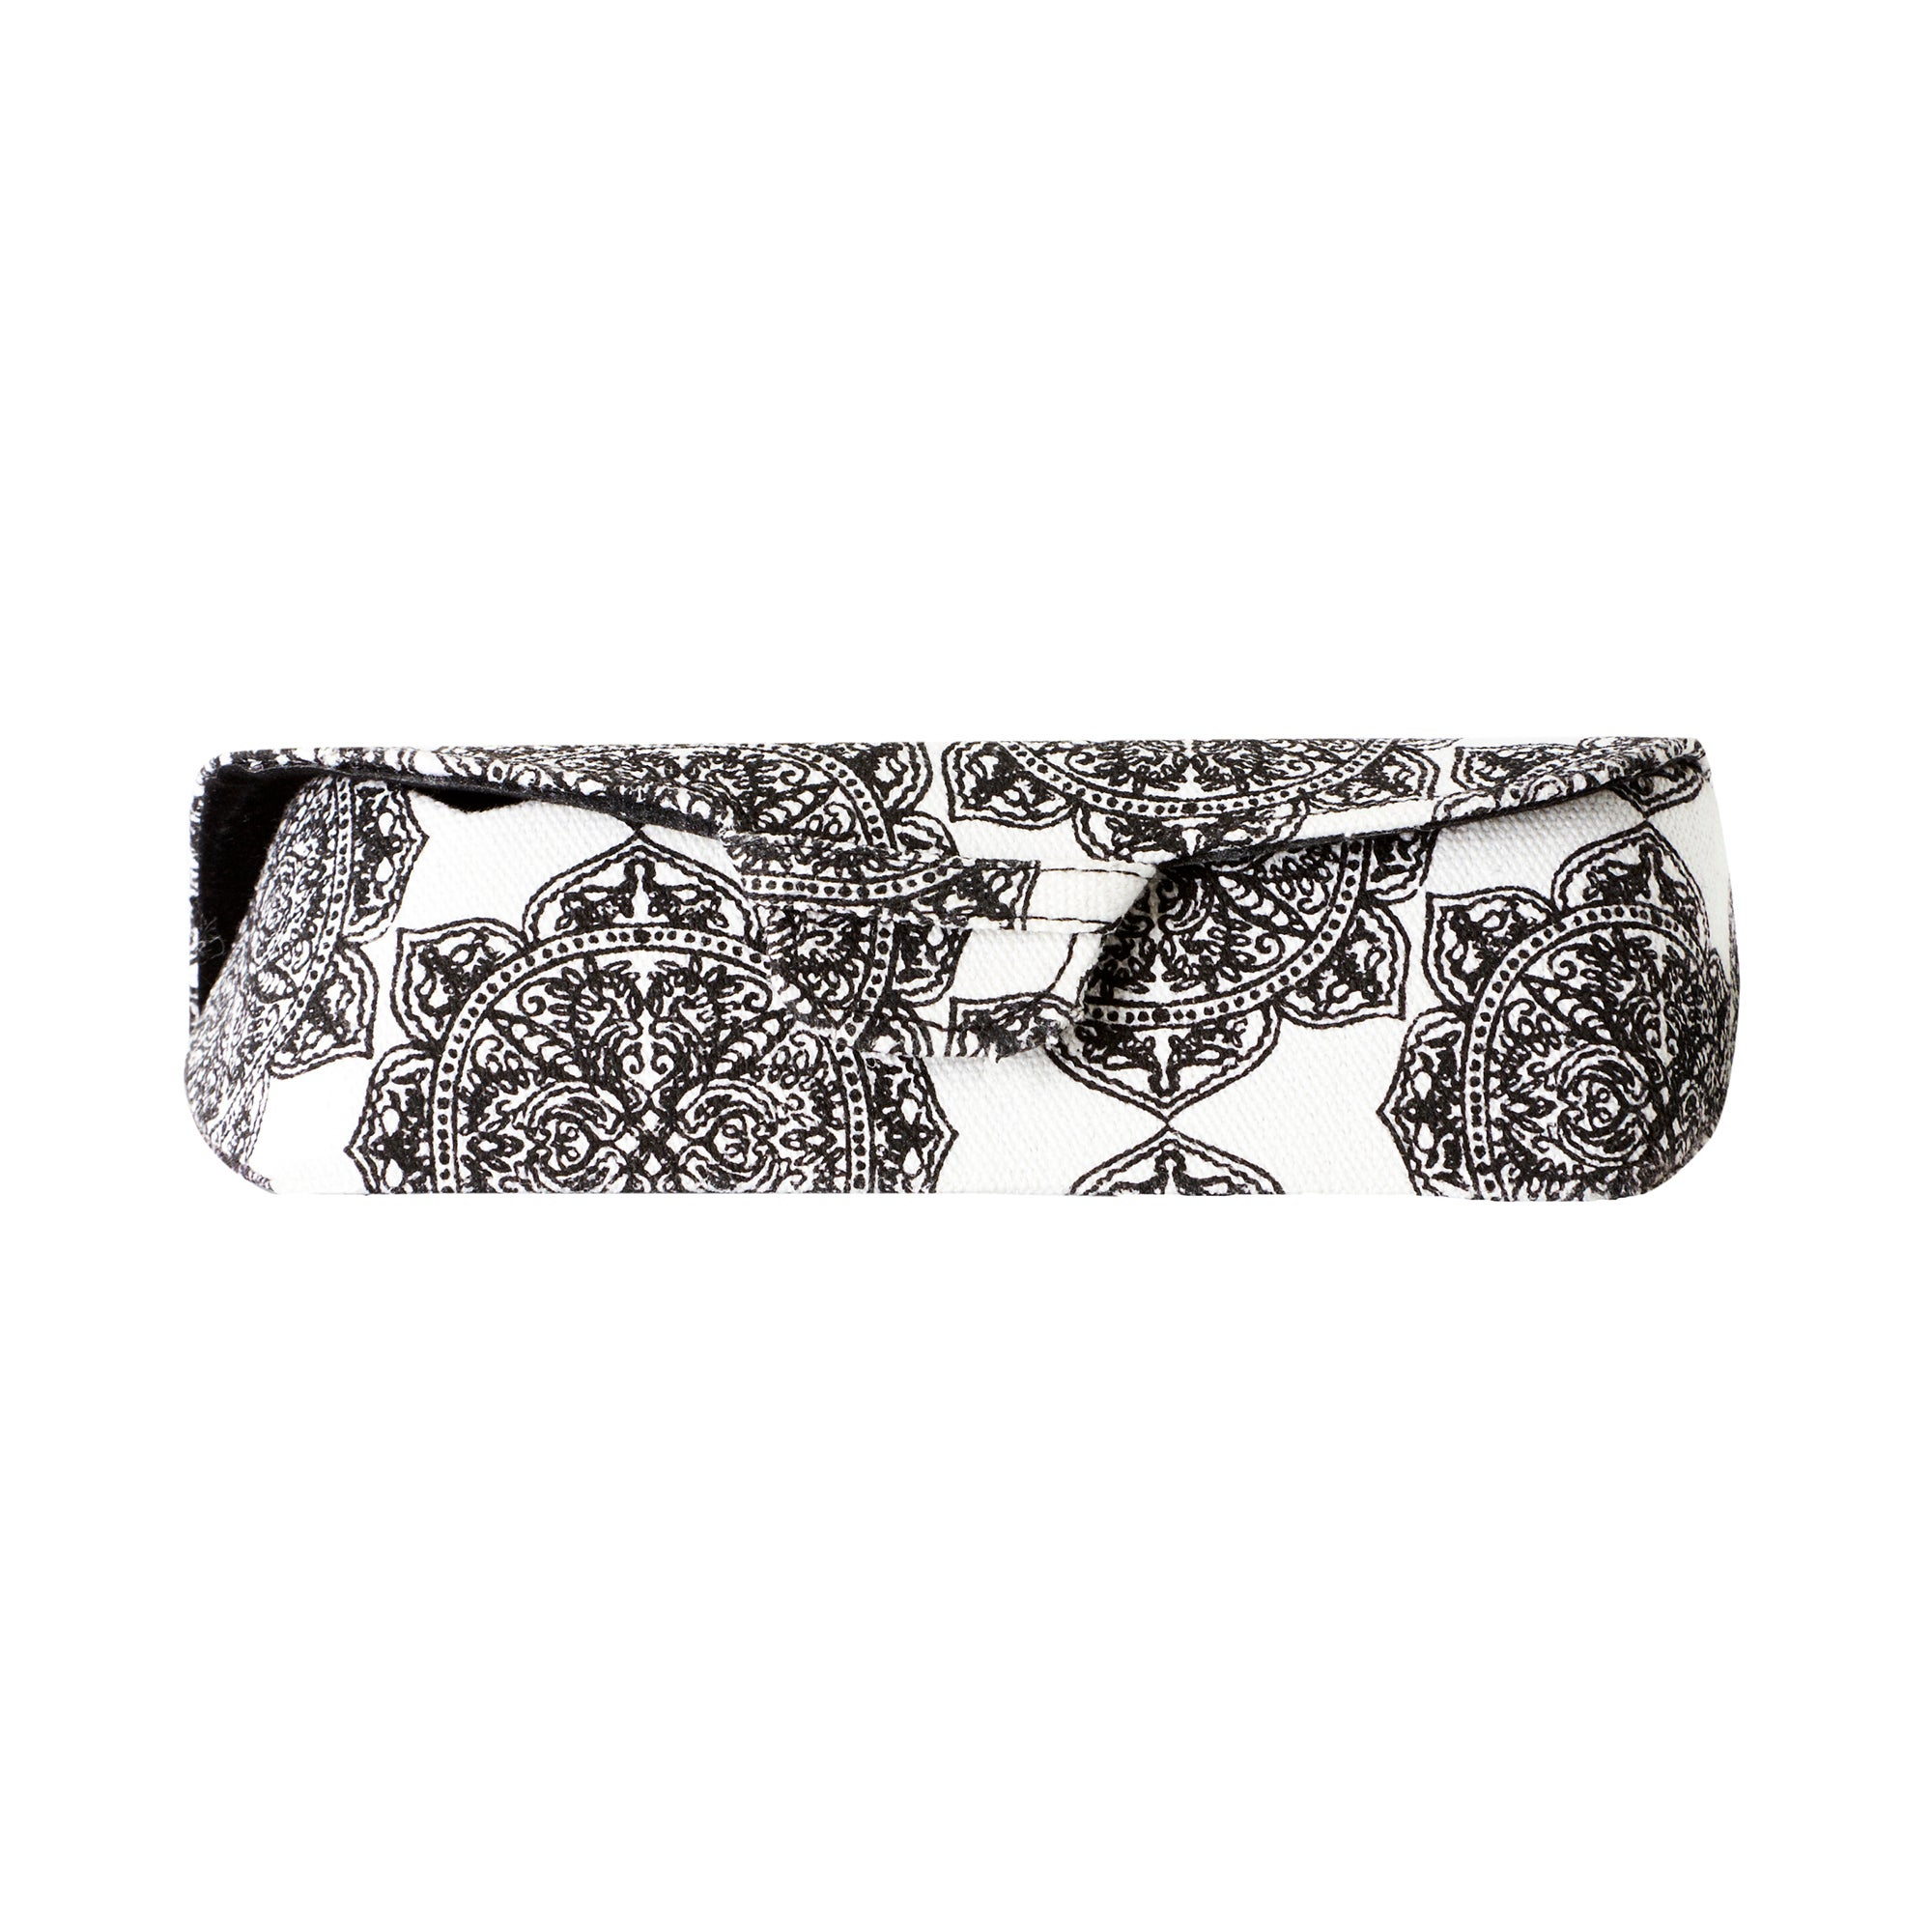 Balinese Collection Snap Closure Sunglasses Case